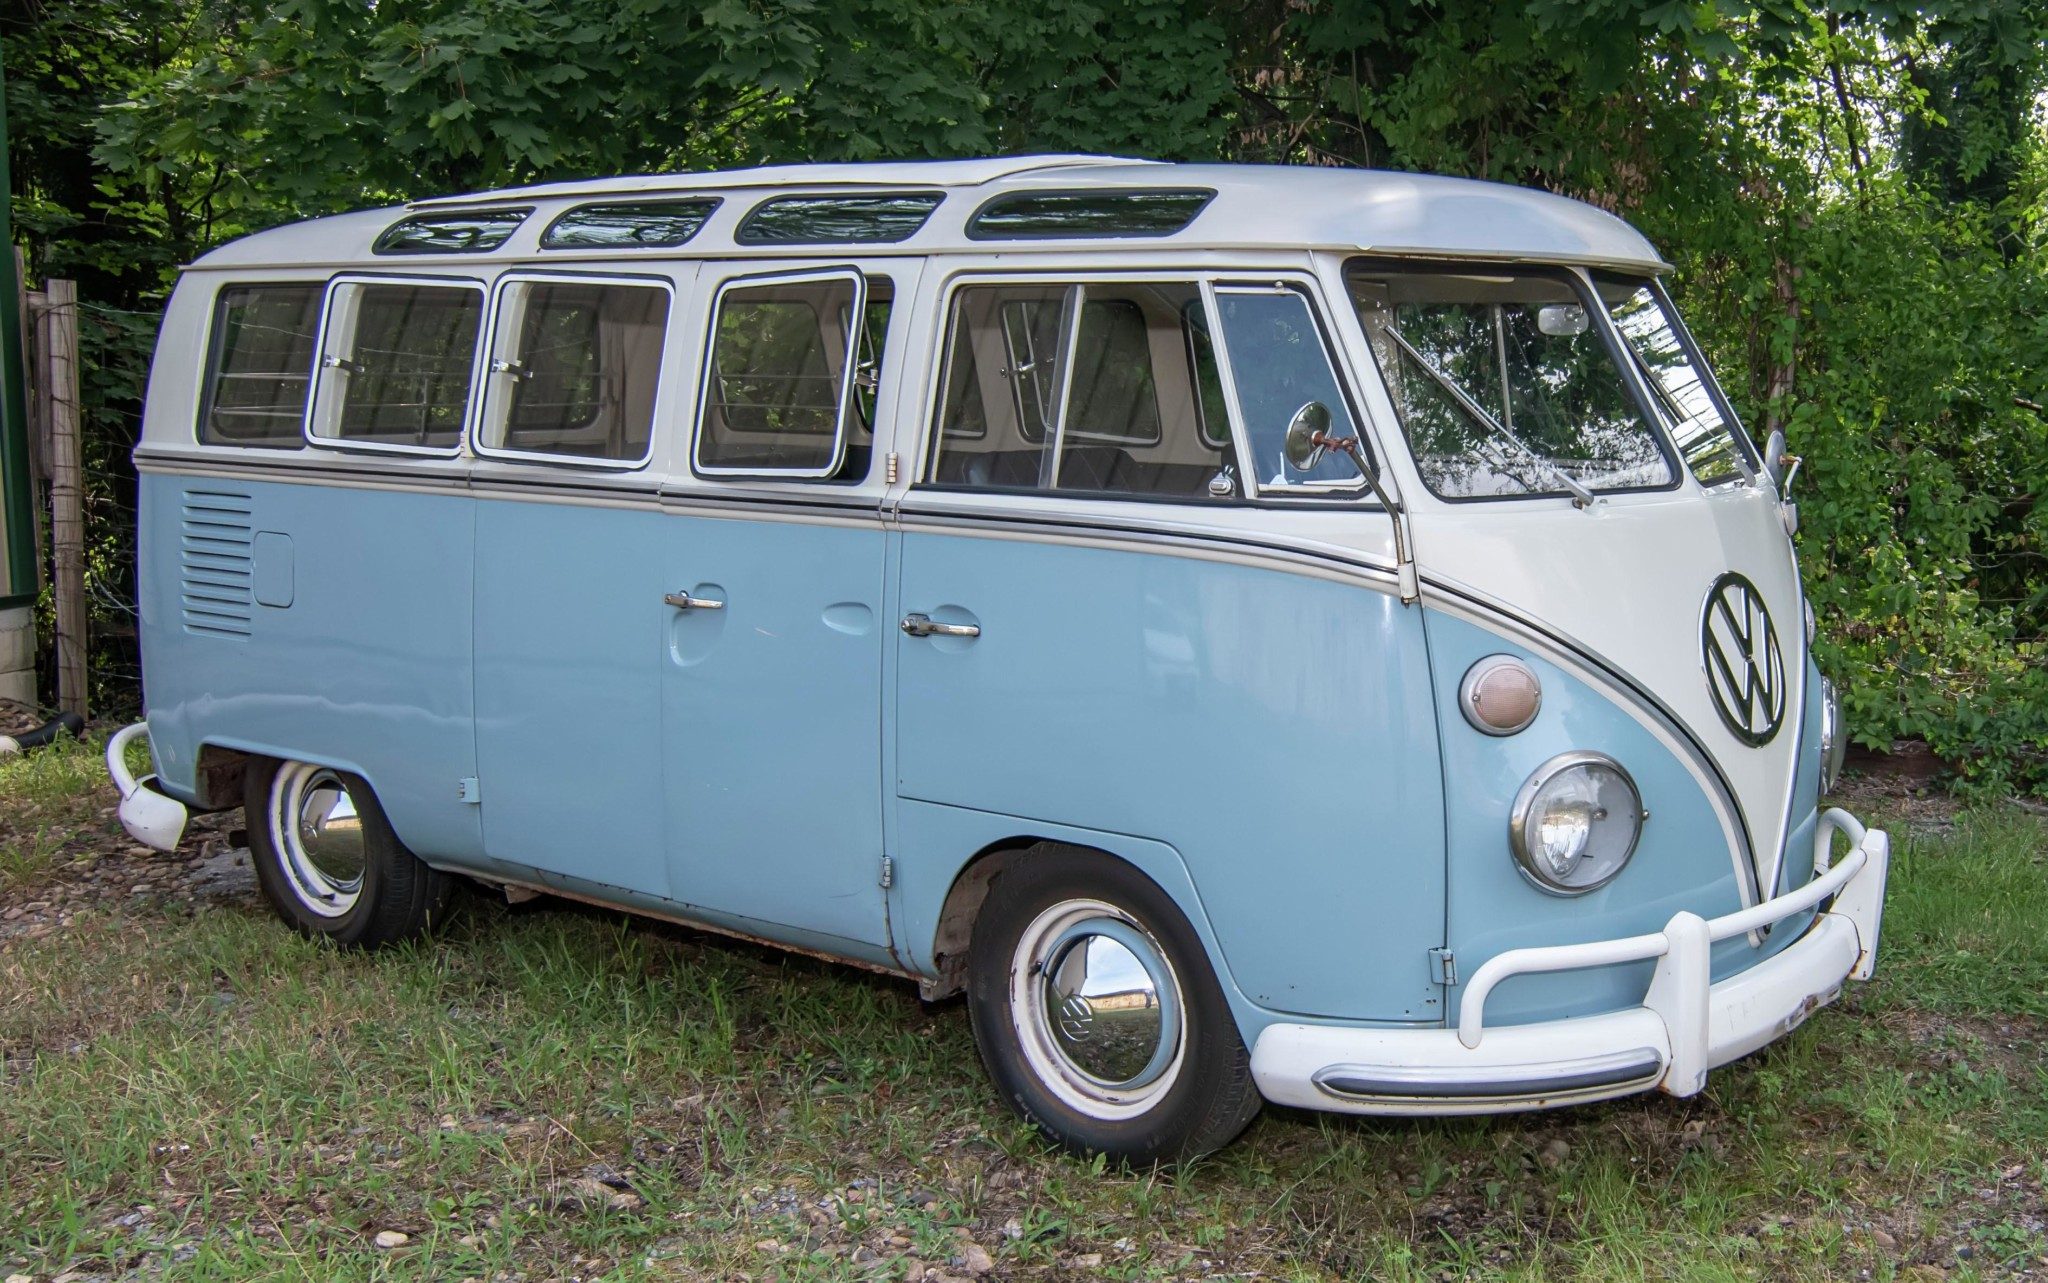 1967_volkswagen_bus_1565561325ceffc6298c0e26Bus-Full-View-9